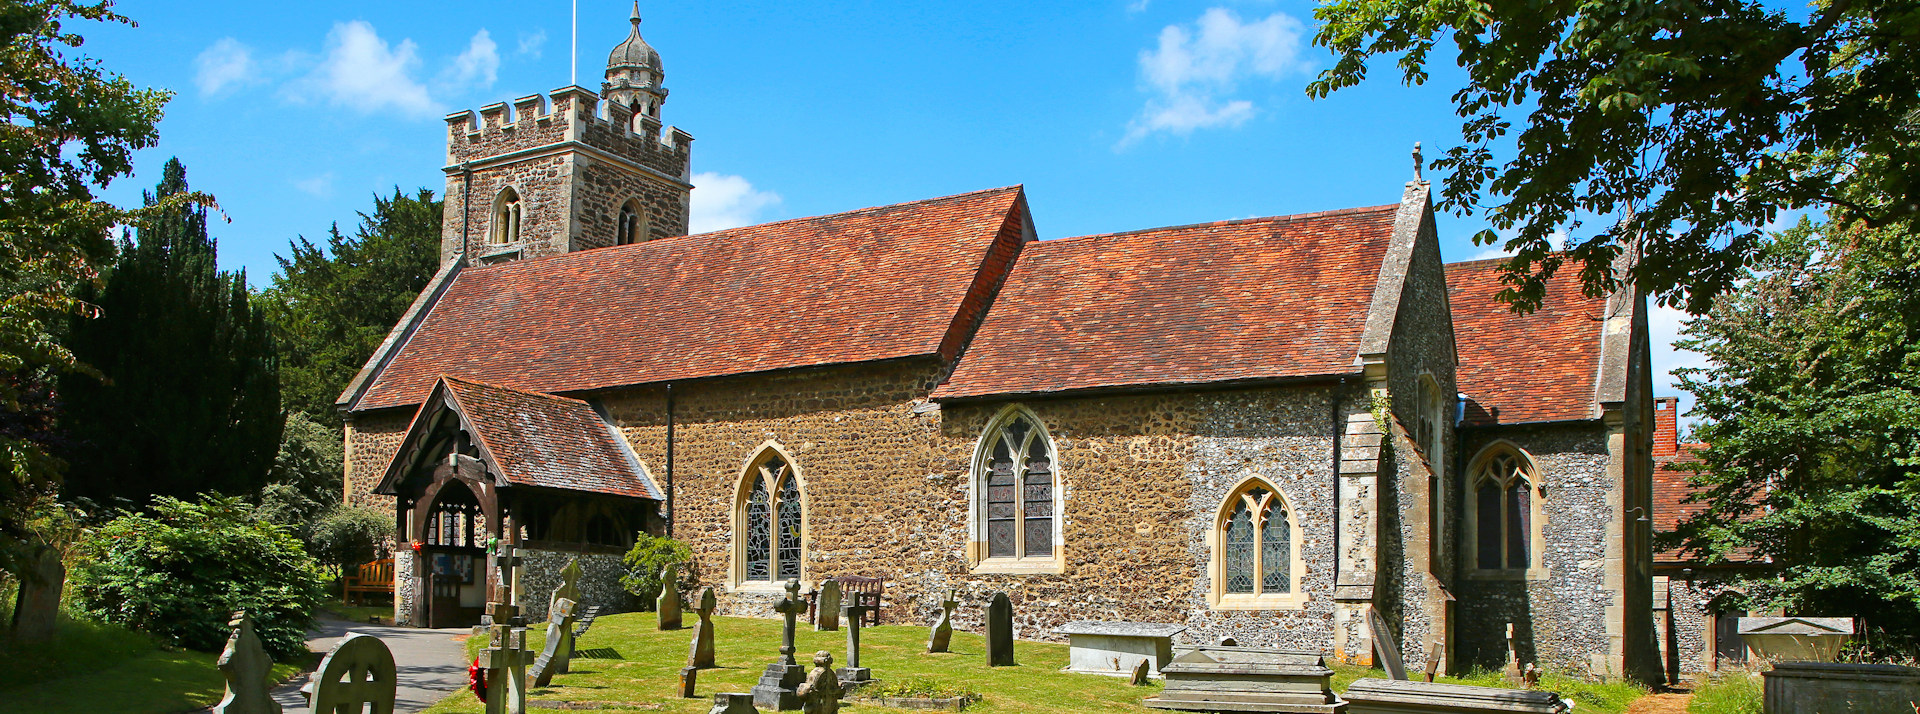 All Saints' Church, Binfield